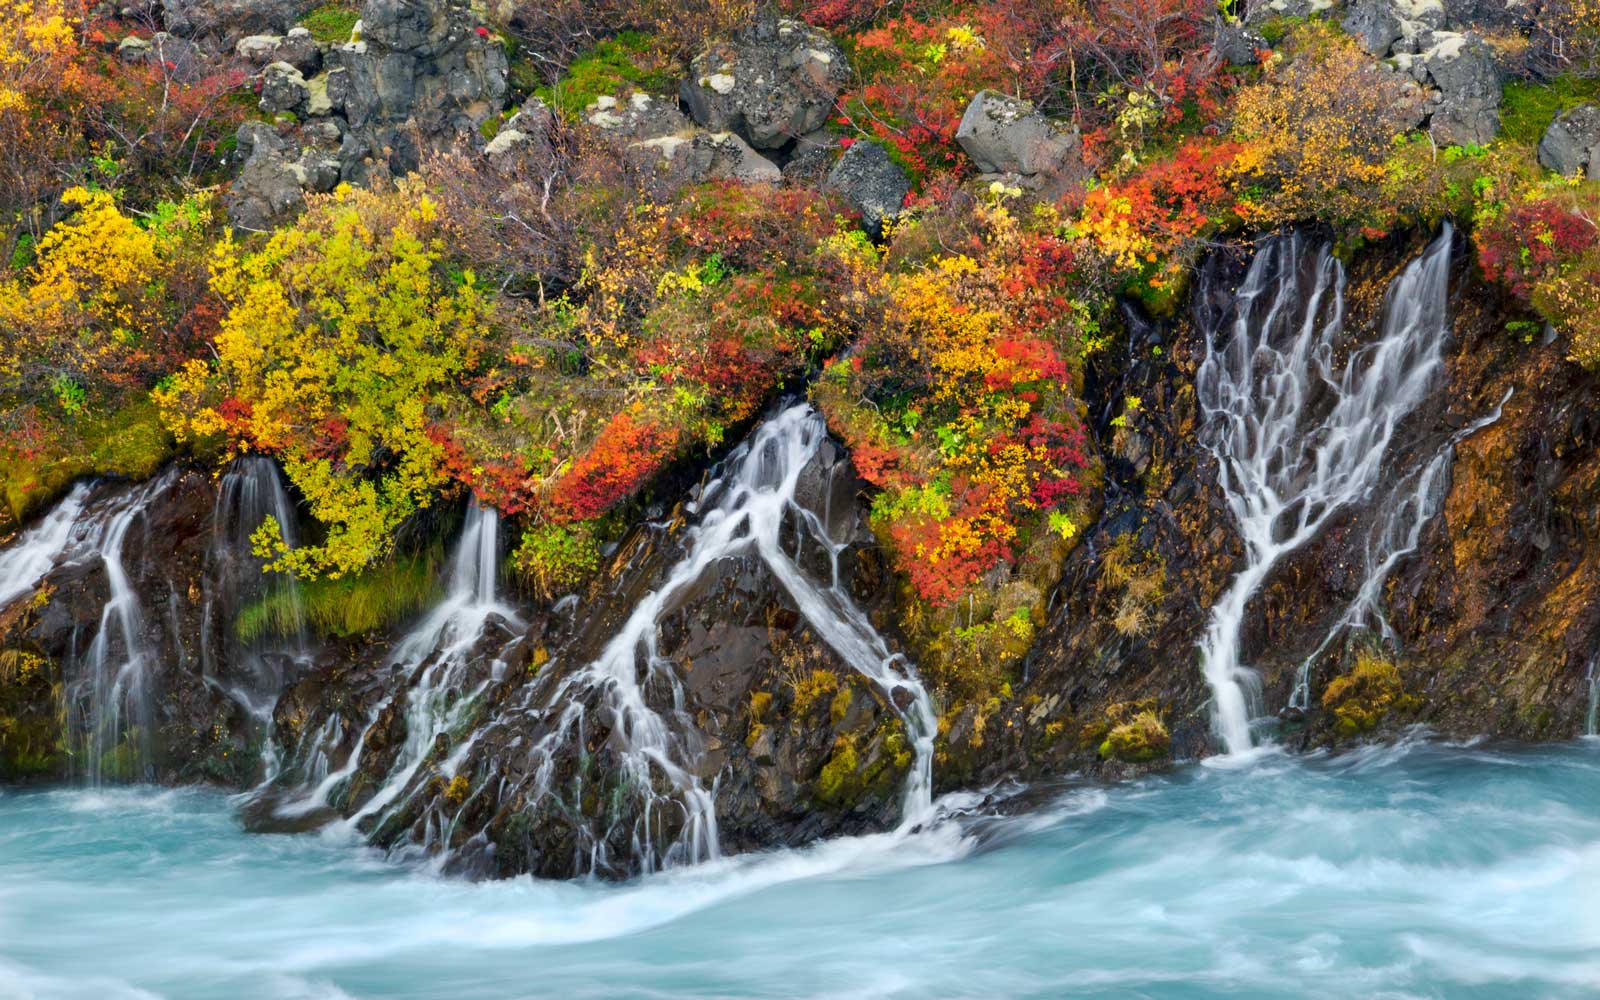 Hraunfossar Falls in the Autumn